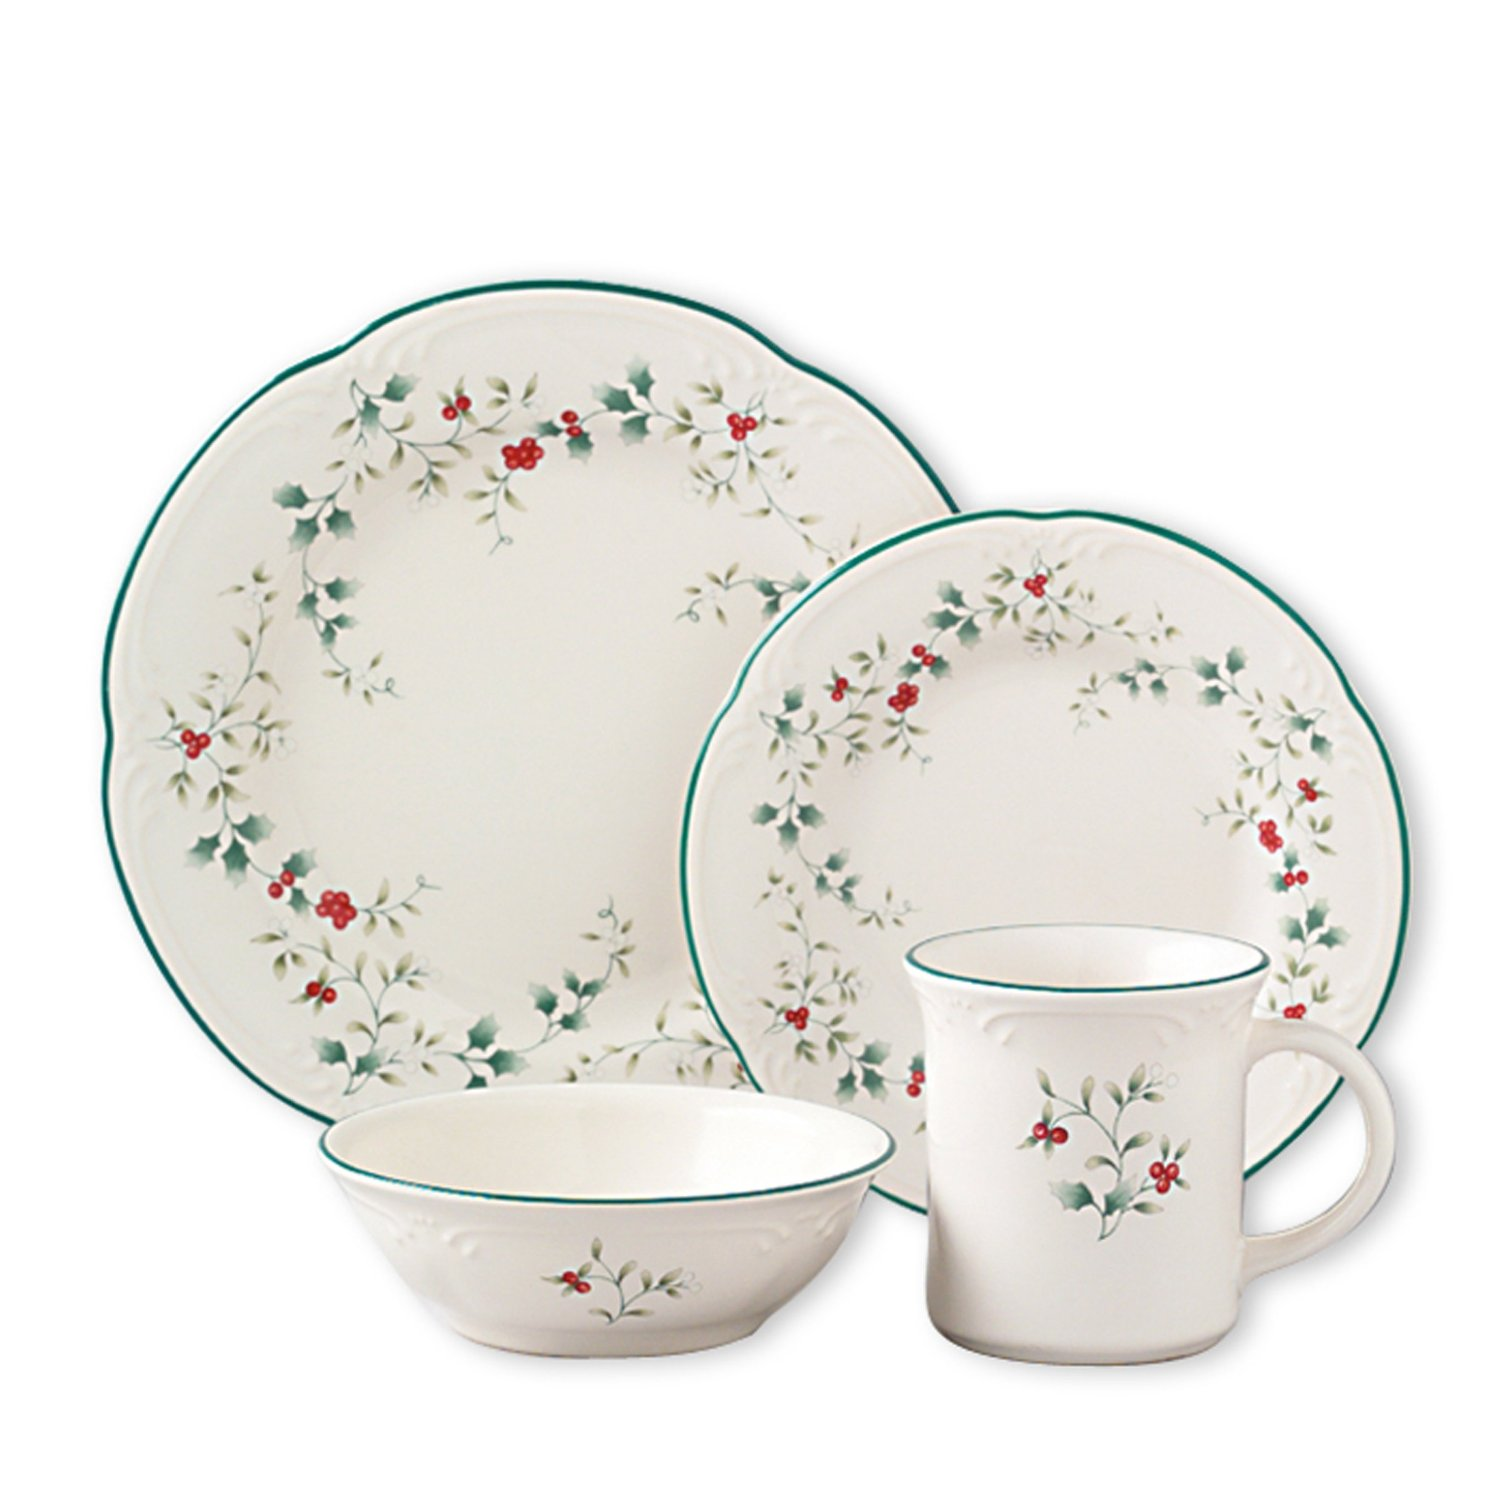 sc 1 st  TopProducts.com : winter dinnerware sets - Pezcame.Com